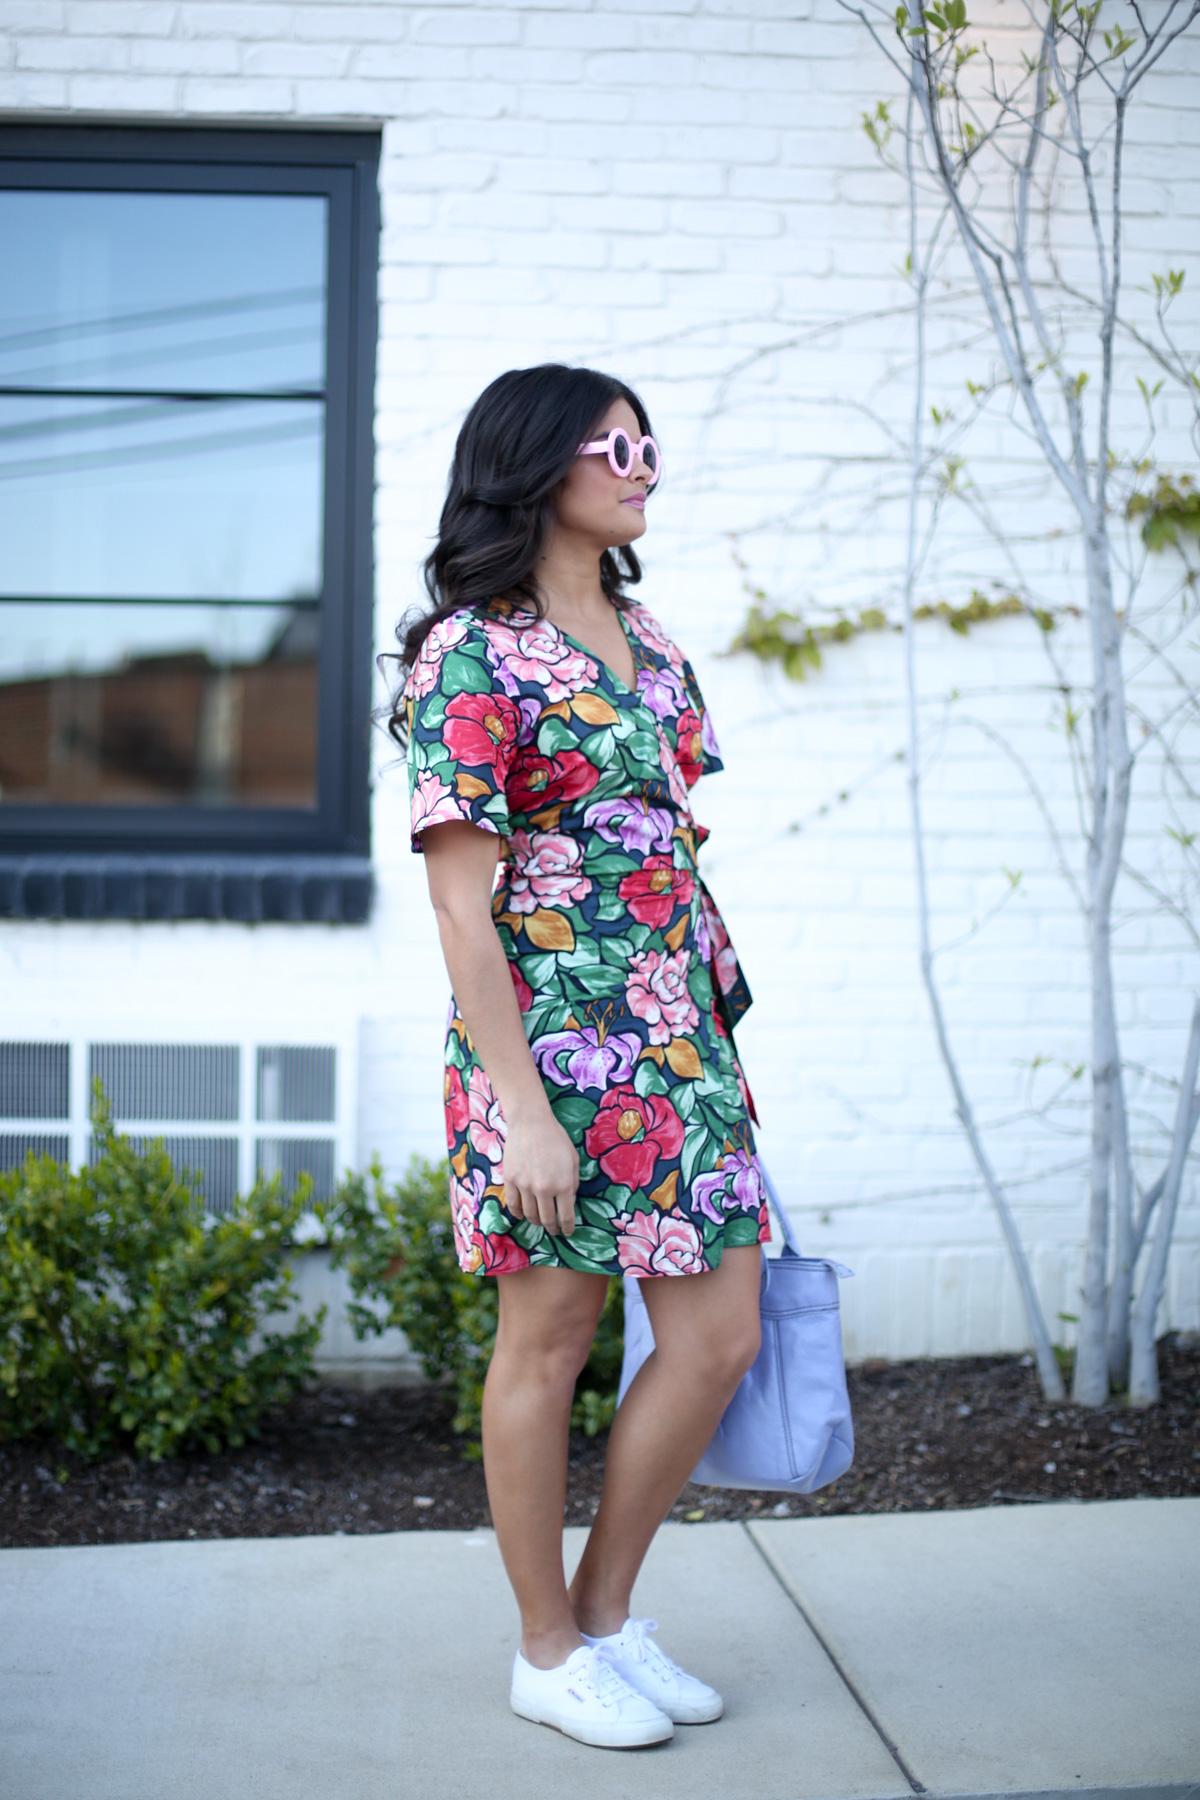 Priya the Blog, Nashville fashion blog, Nashville fashion blogger, Zara floral wrap dress, fuzzy cardigan, Superga trainers, Spring outfit with floral wrap dress, how to wear a fuzzy cardigan, fuzzy cardigan with floral wrap dress, ban.do pink circle sunnies